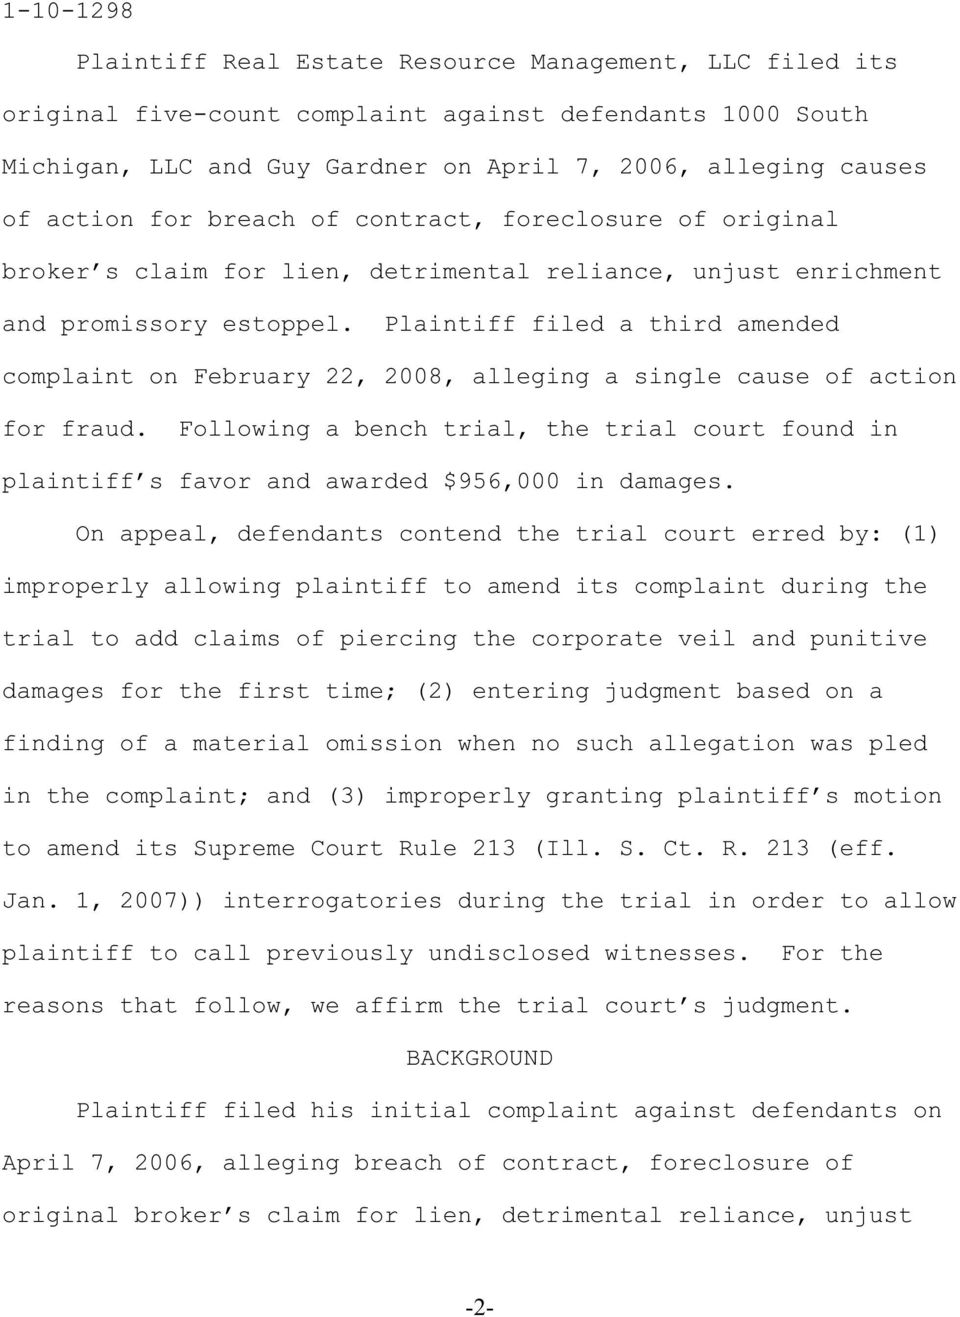 Plaintiff filed a third amended complaint on February 22, 2008, alleging a single cause of action for fraud.